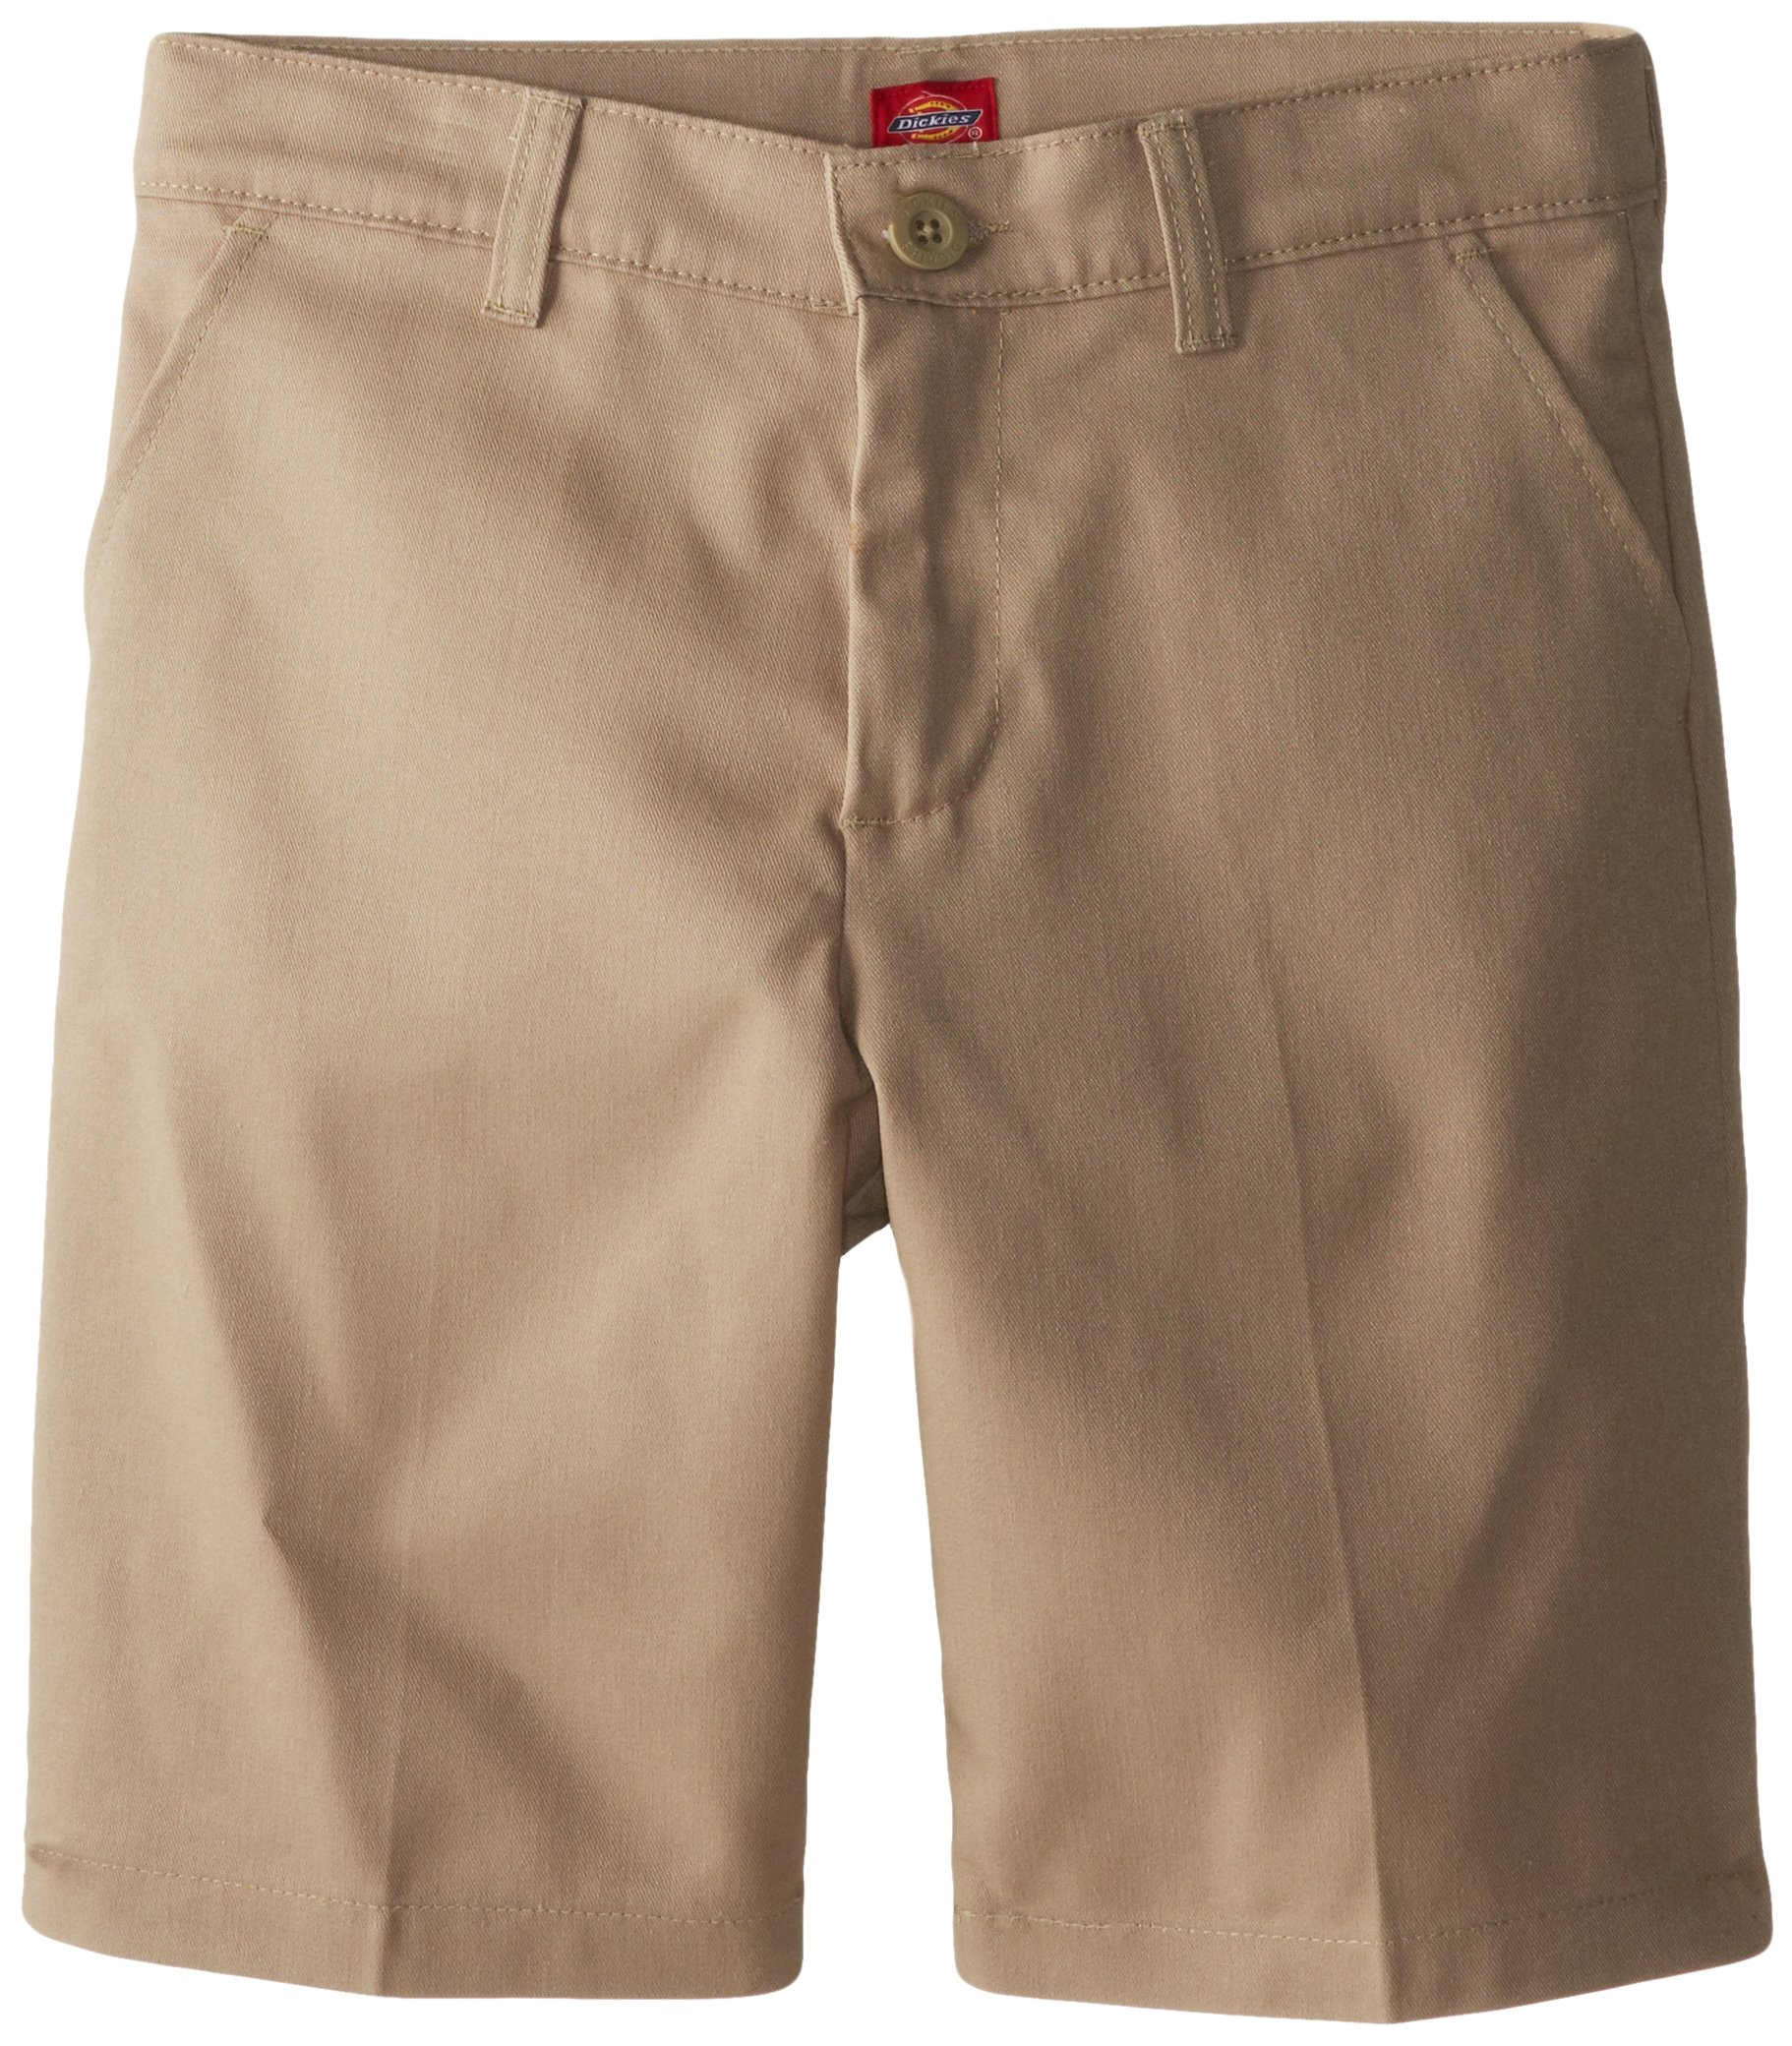 Dickies Girl Big Girls' Flex Waist Slim Fit Flat Front Short, Desert Sand, 12